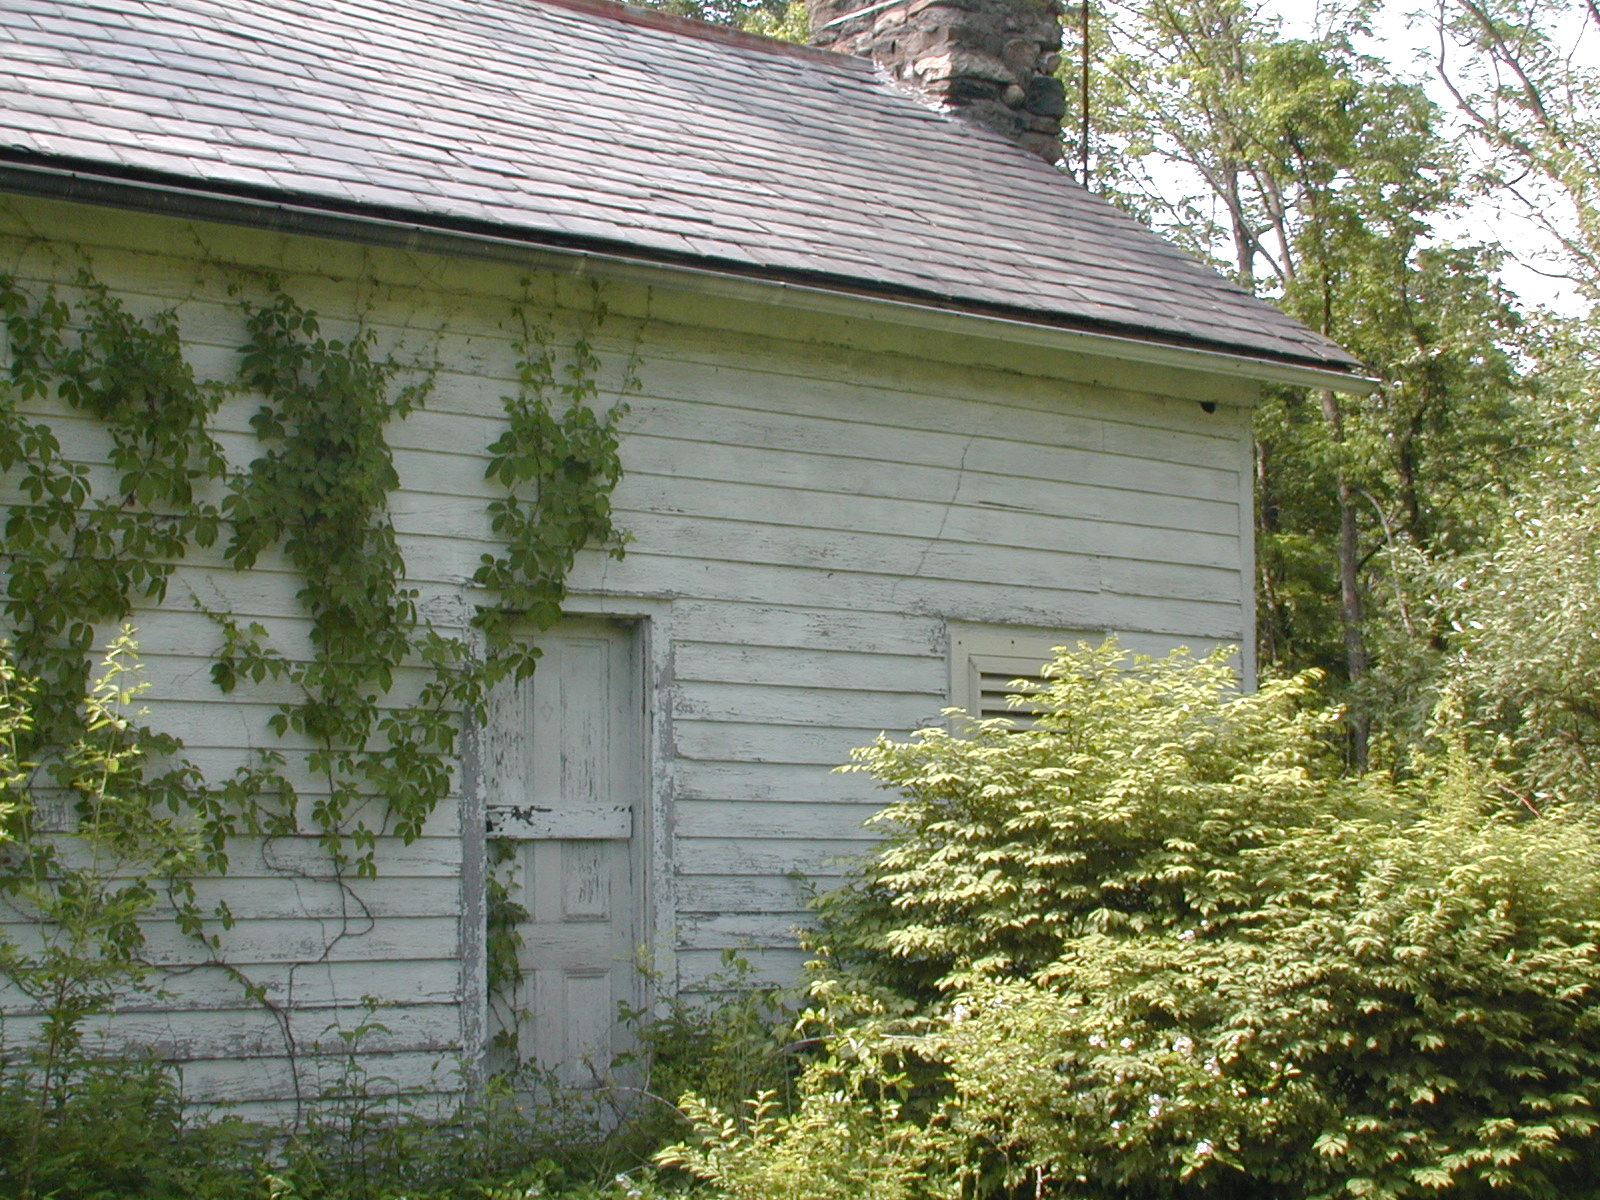 Second unknown house, side door